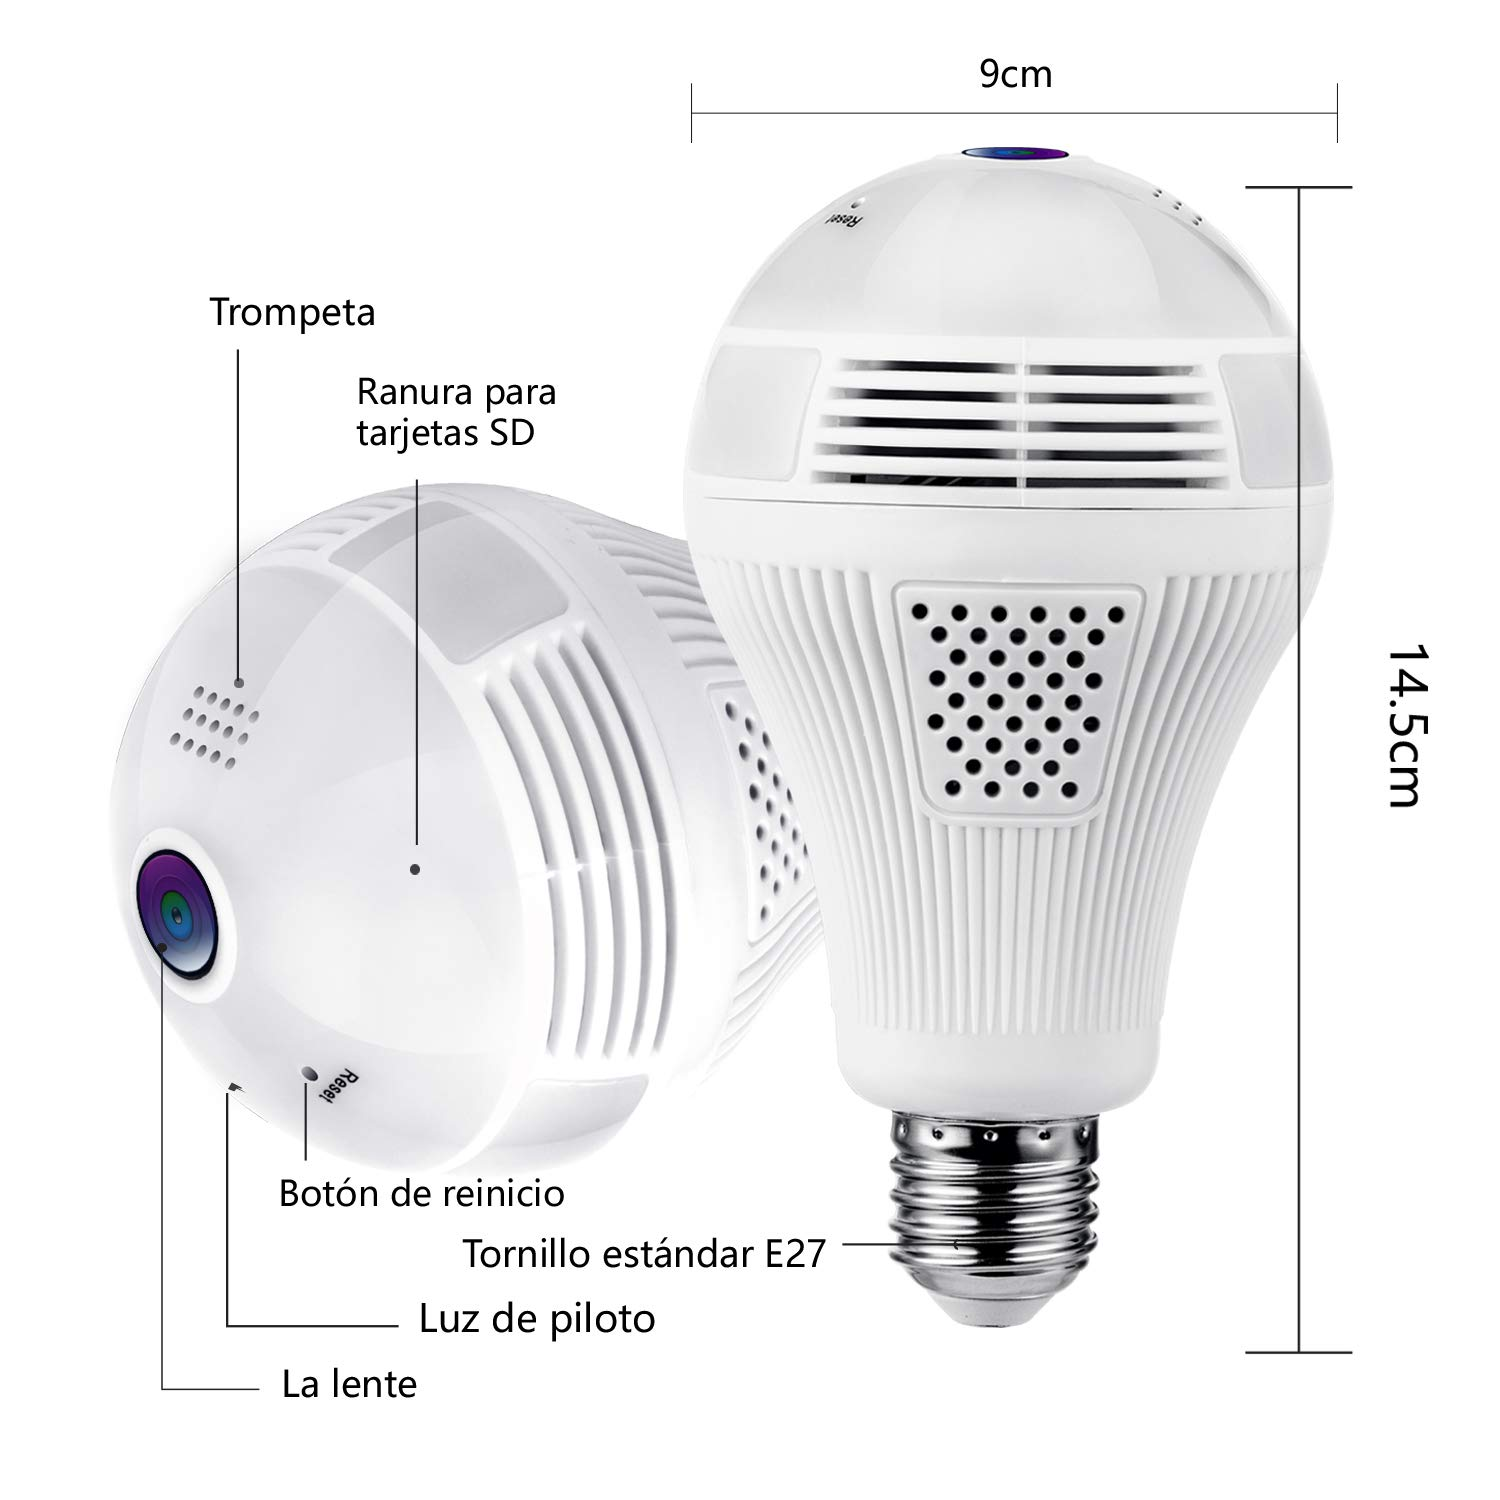 1080P WiFi bulb camera with 360 degree Fisheye lens Panoramic camera  support  2-way audio and PC / iOS / Android